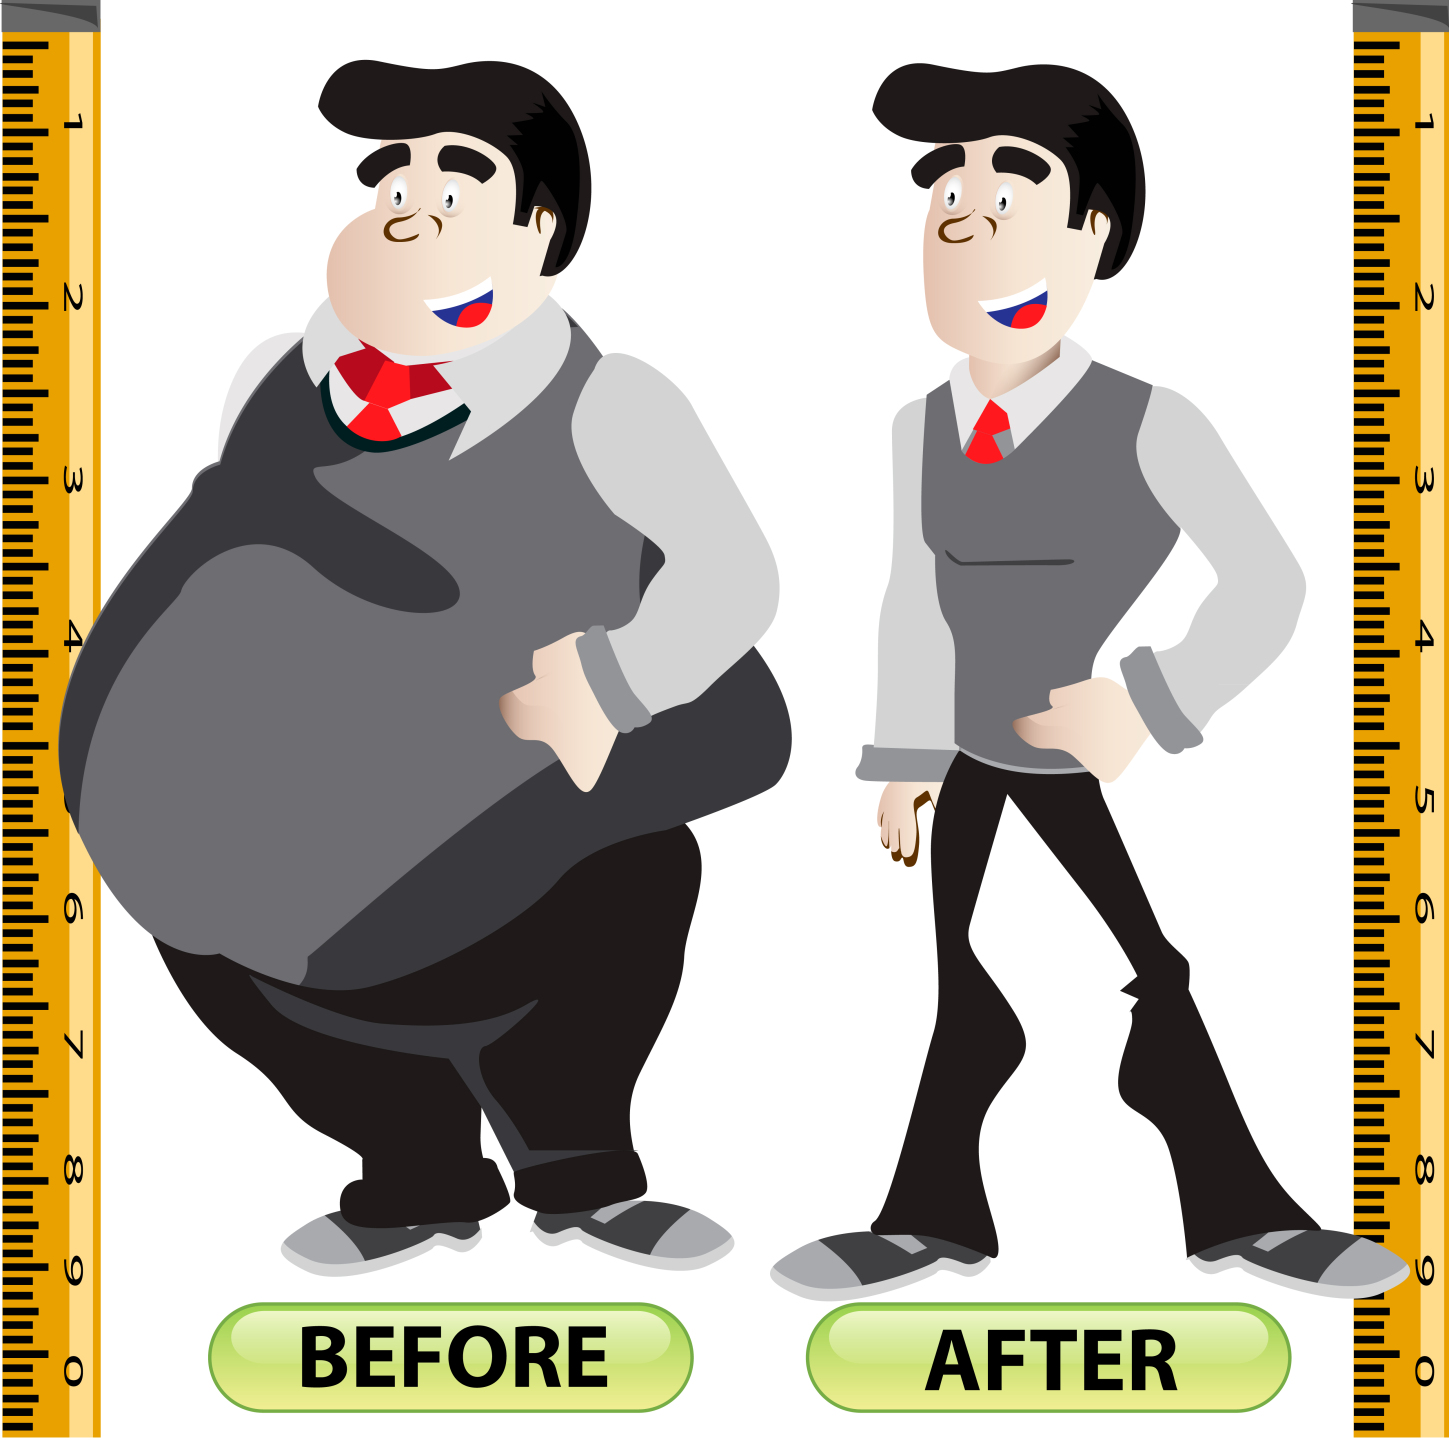 Before After Weight Loss Overweight Obese Clip Art.